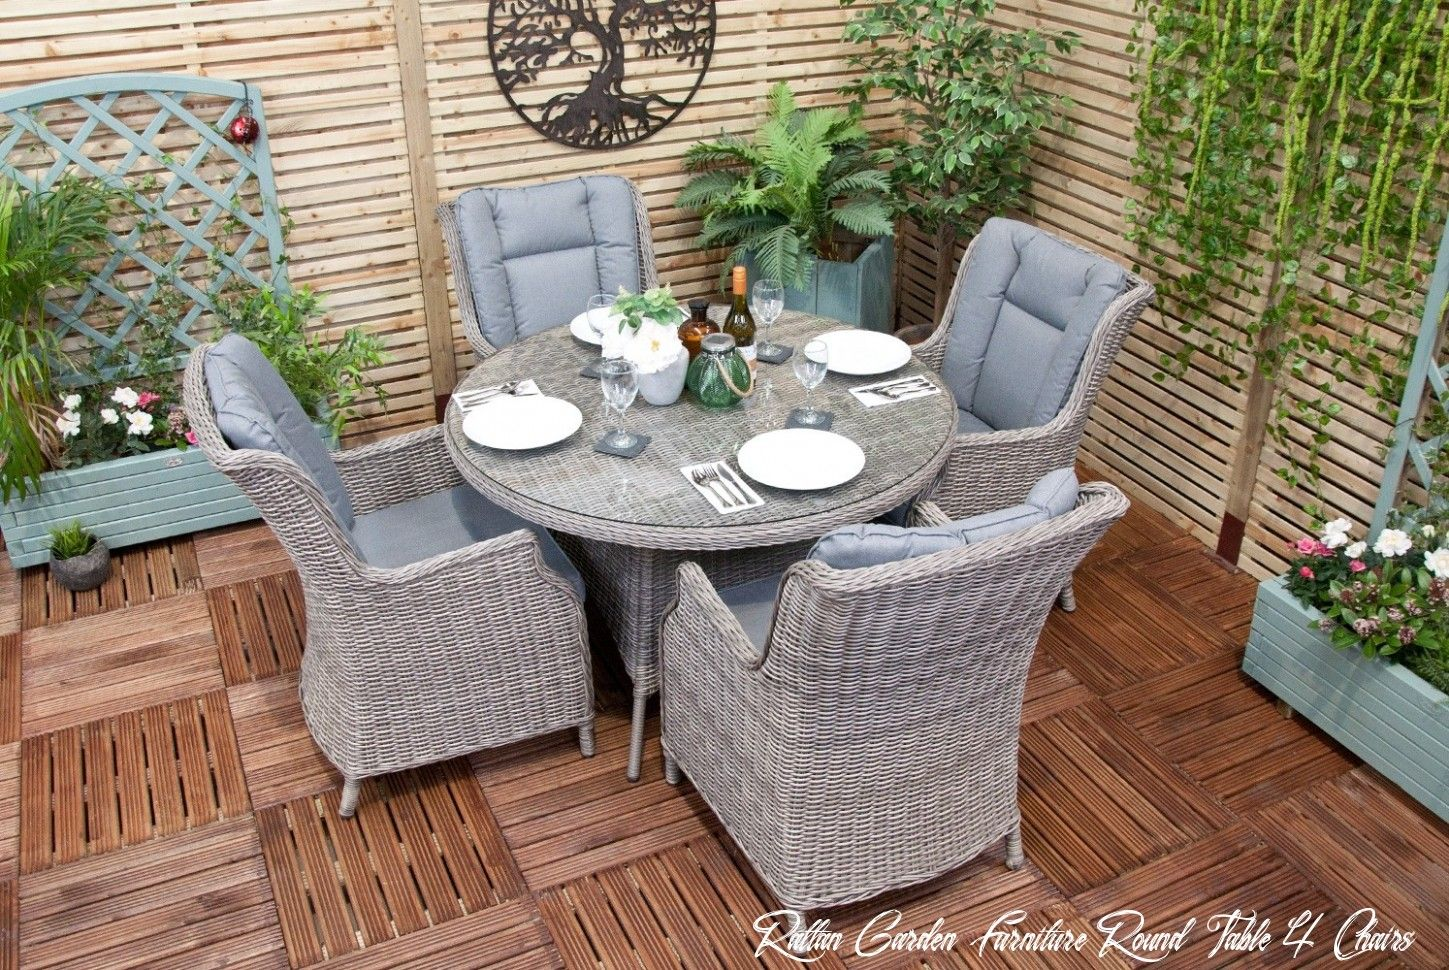 10 Rattan Garden Furniture Round Table 4 Chairs In 2020 Rattan Garden Furniture Outdoor Furniture Sets Dining Furniture Sets